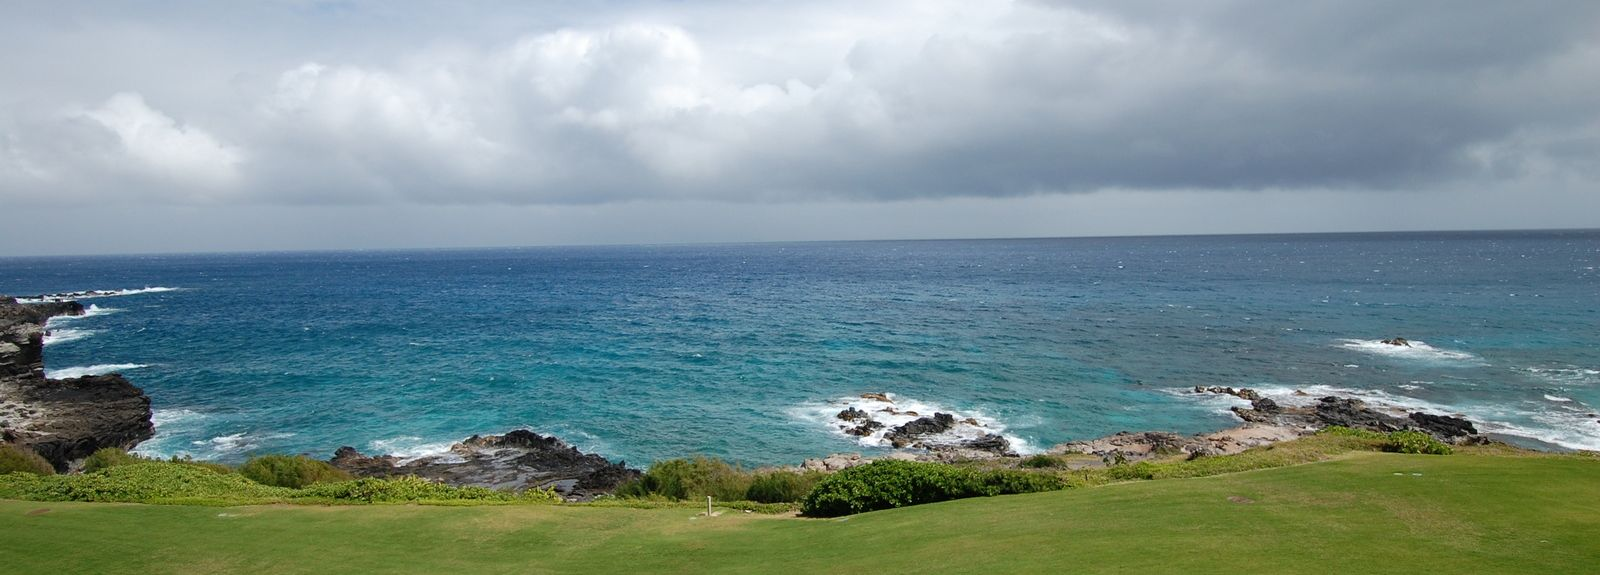 Kapalua Golf Club Plantation Course, Lahaina, Hawaii, United States of America